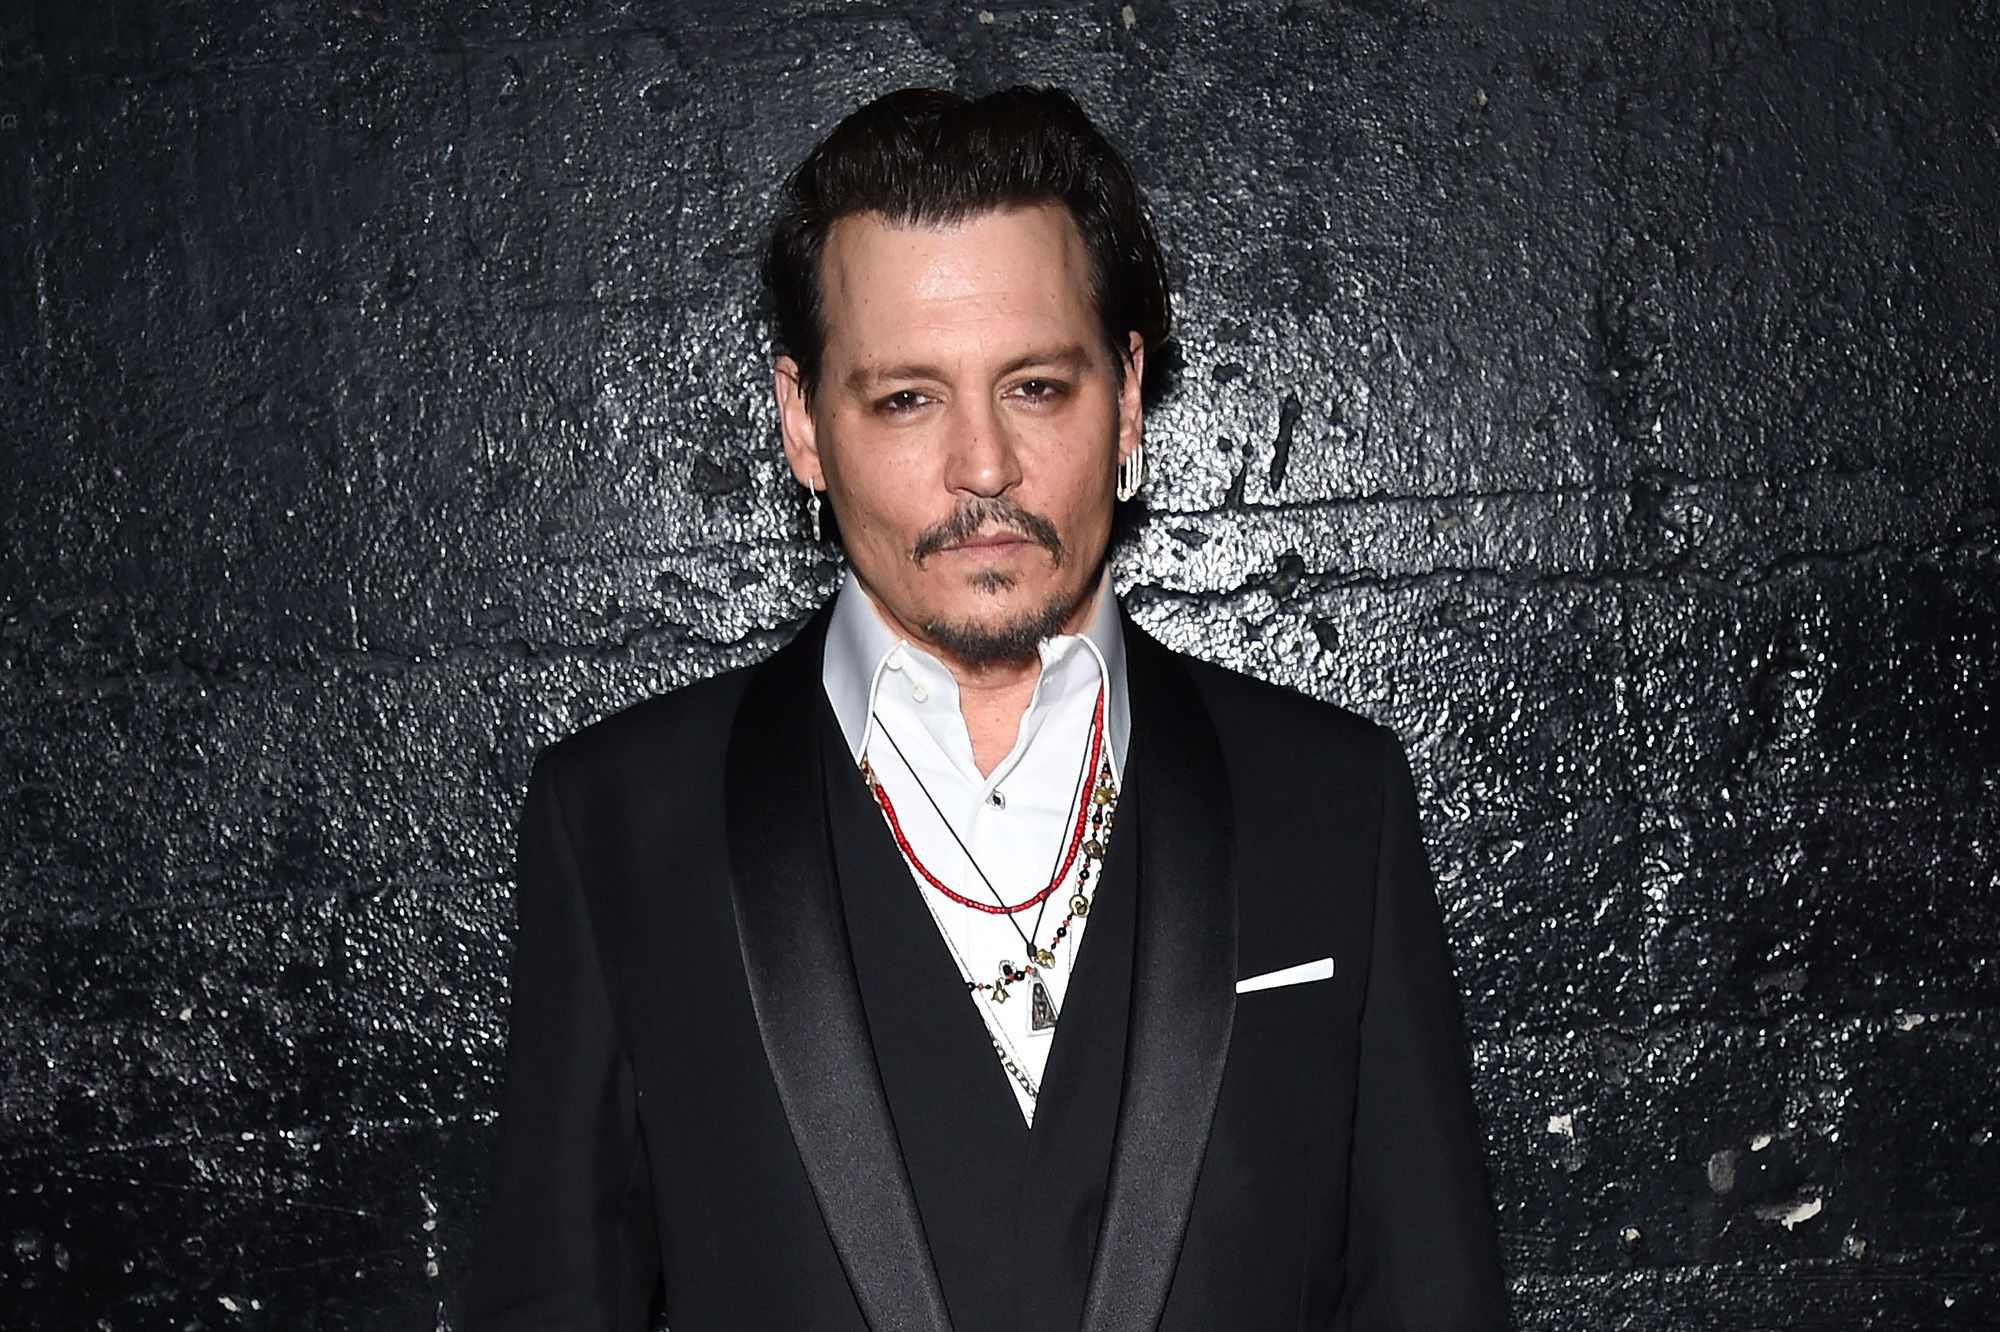 Johnny Depp au festival de Cannes